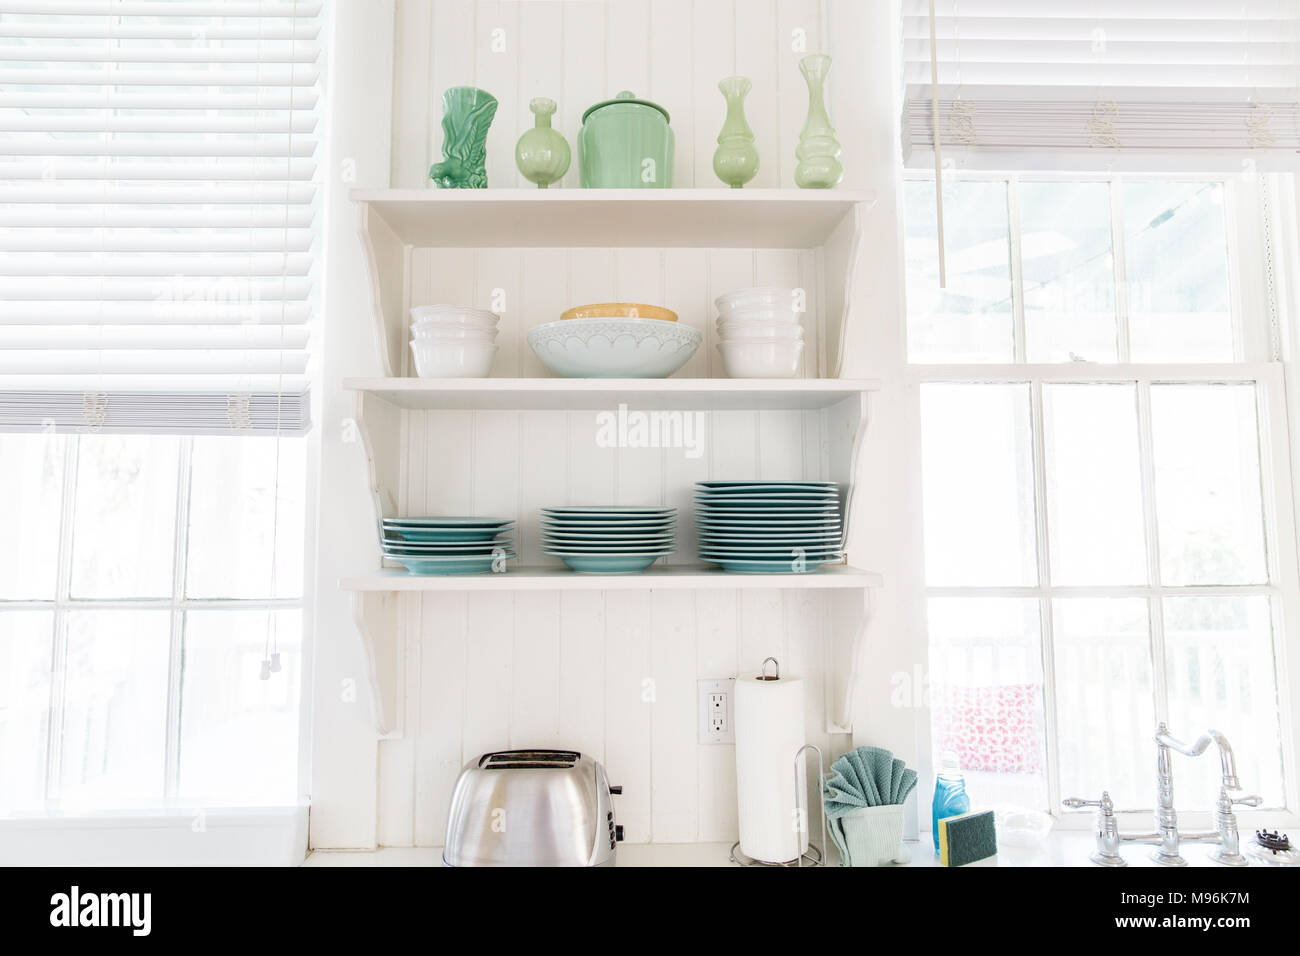 Kitchen shelves with green plates/bowls and toaster - Stock Image